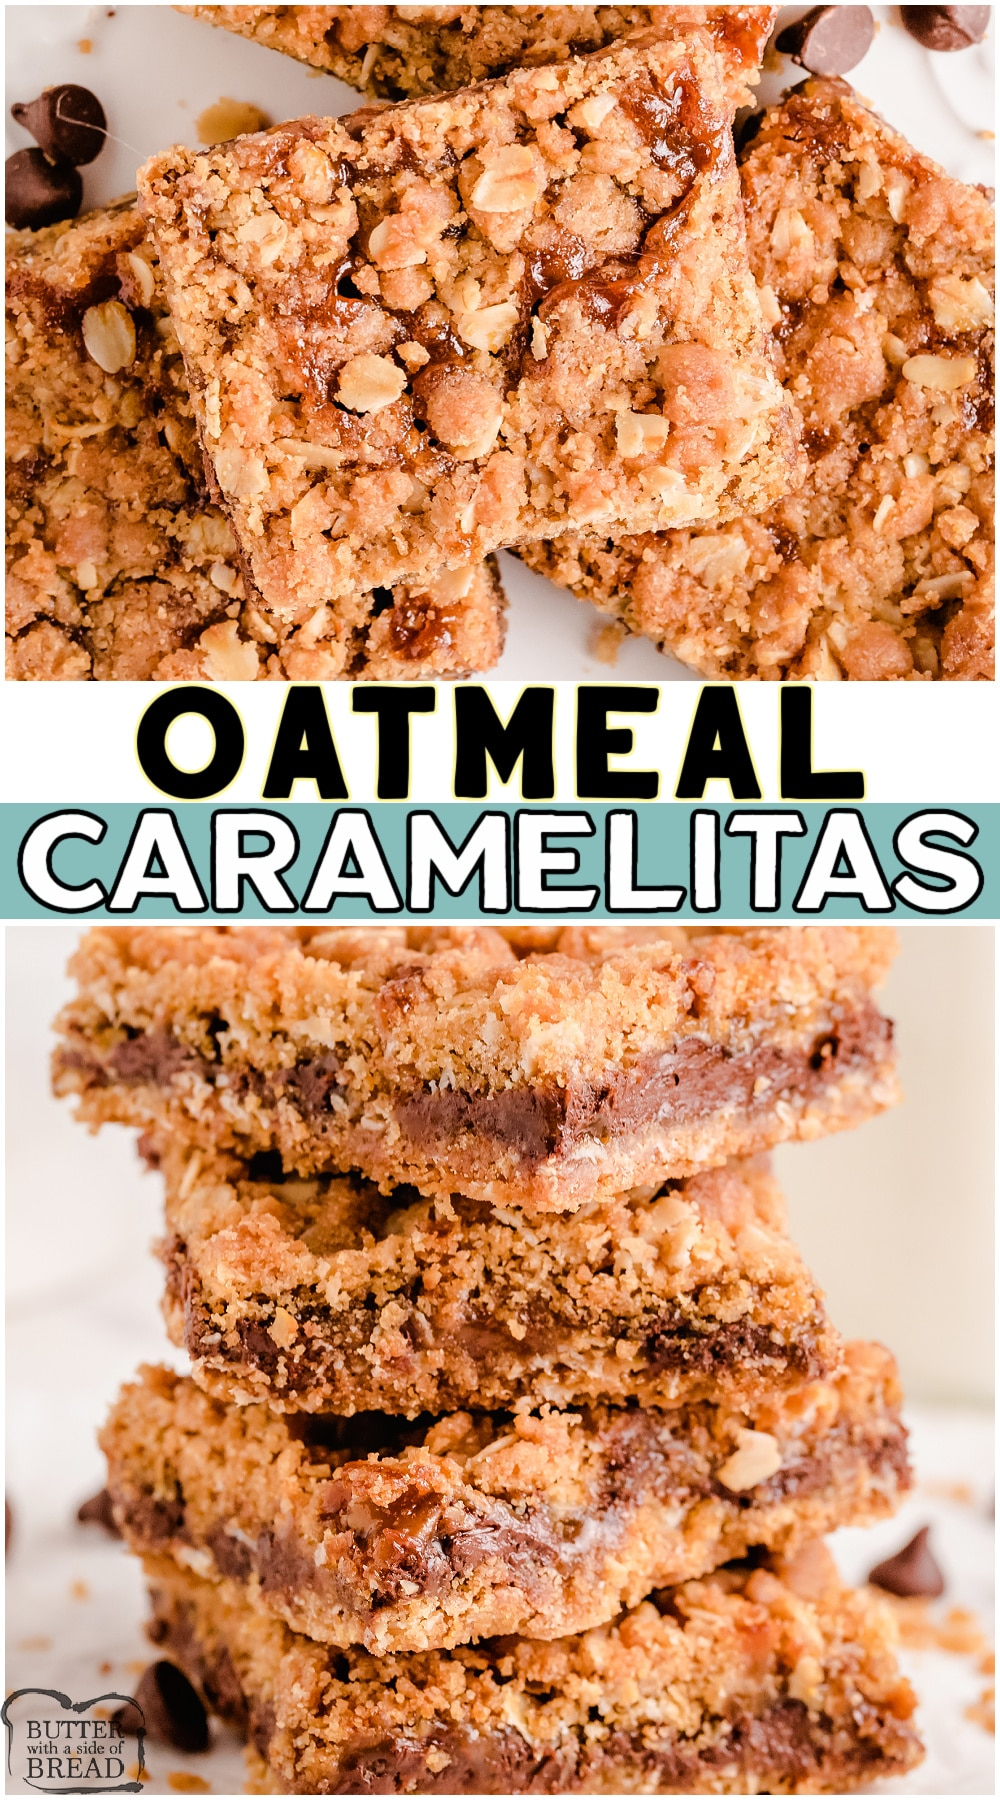 Oatmeal Caramelitas are an incredible oatmeal chocolate dessert bar with caramel! Layers of oats, brown sugar, butter and chocolate chips with a delightful layer of gooey caramel baked inside. #caramel #oatmeal #barrecipe #caramelitas #easyrecipe from BUTTER WITH A SIDE OF BREAD